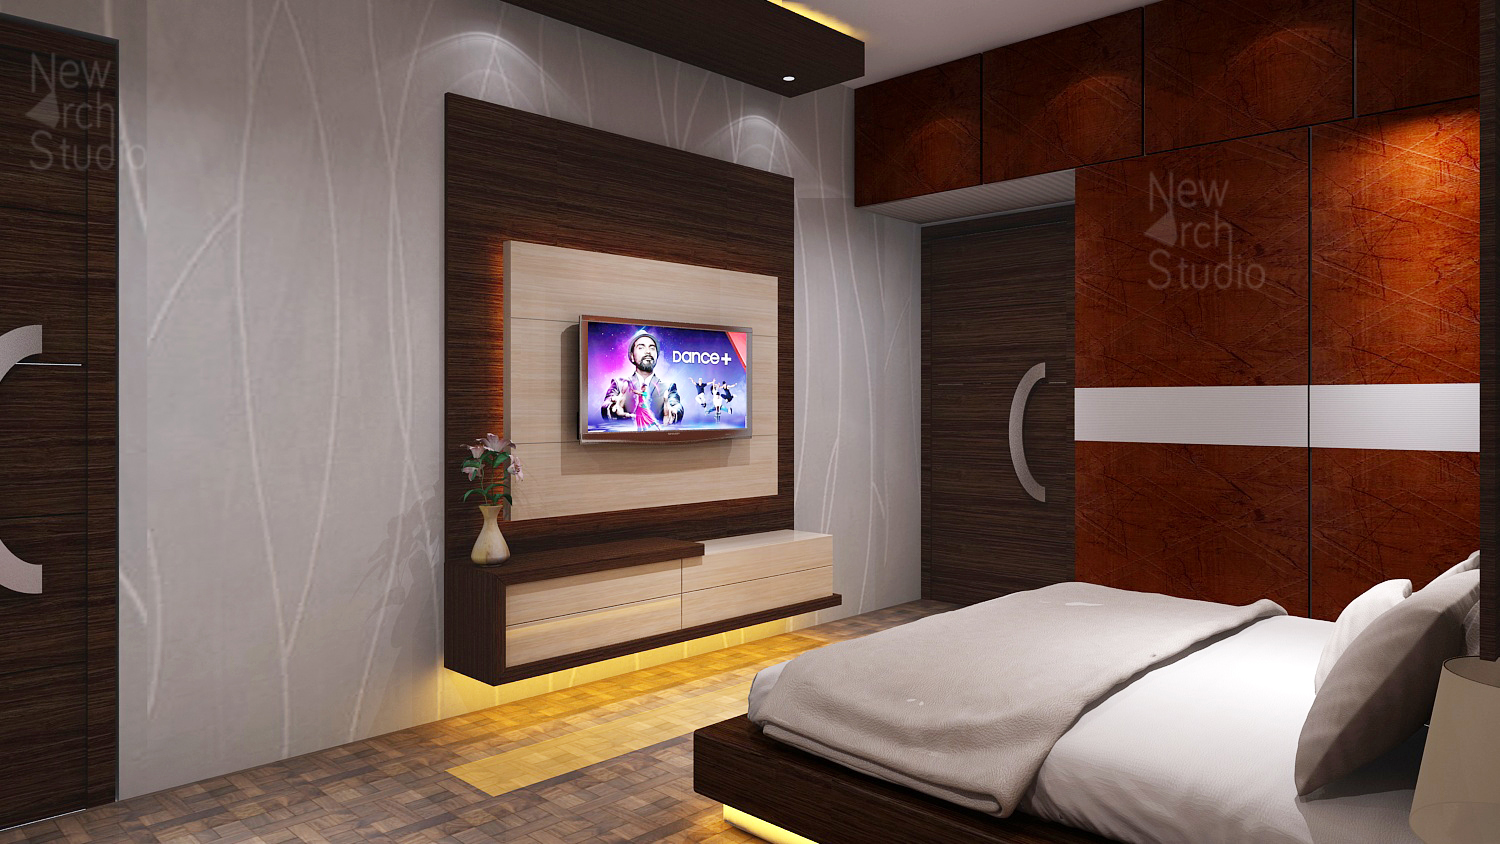 master bedroom tv wall design for residence done by new arch studio